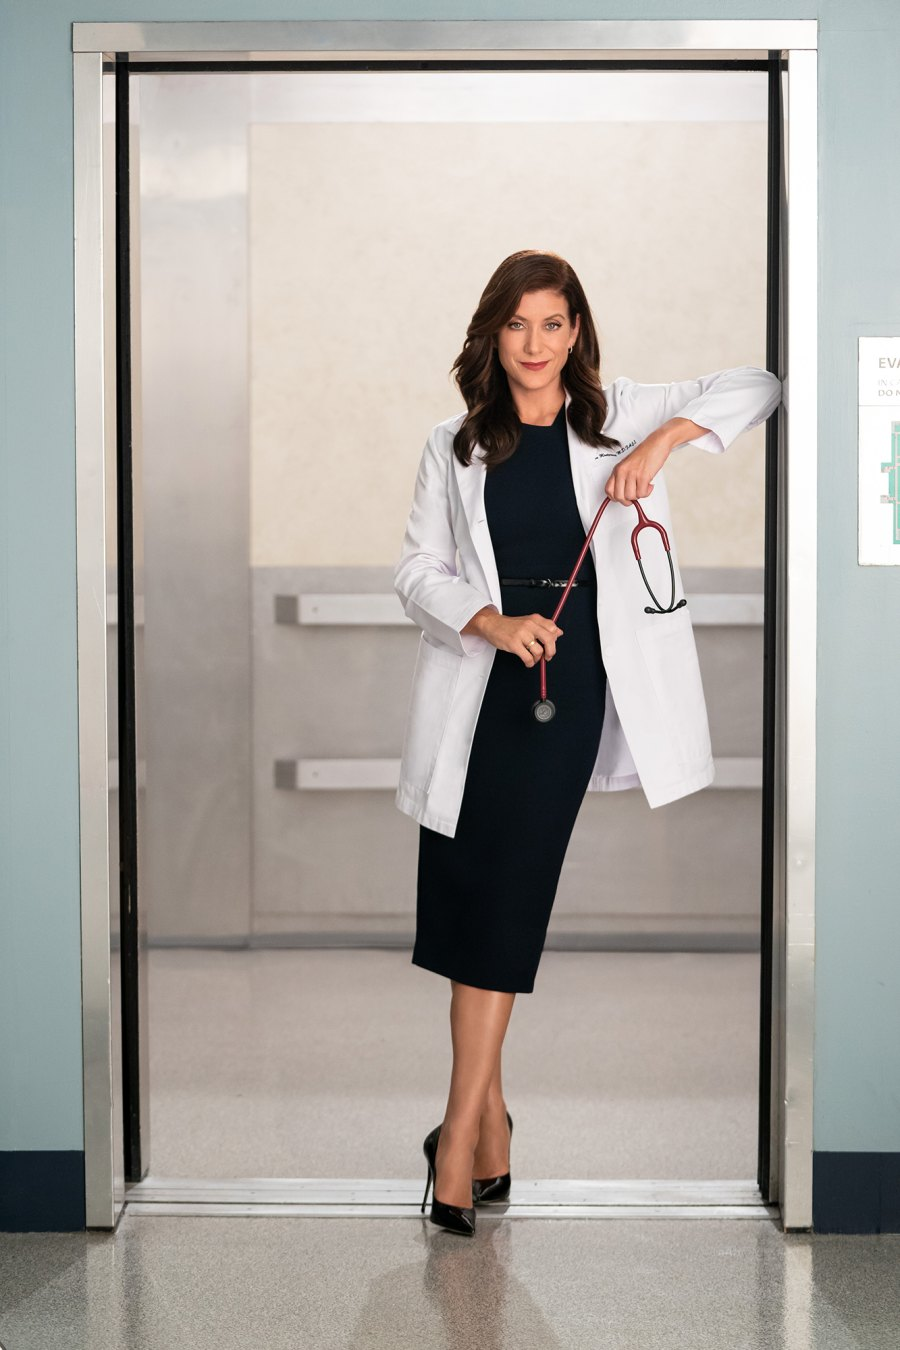 Addison Montgomery is Back! 'Grey's Anatomy' Teases First Look at Returning Character